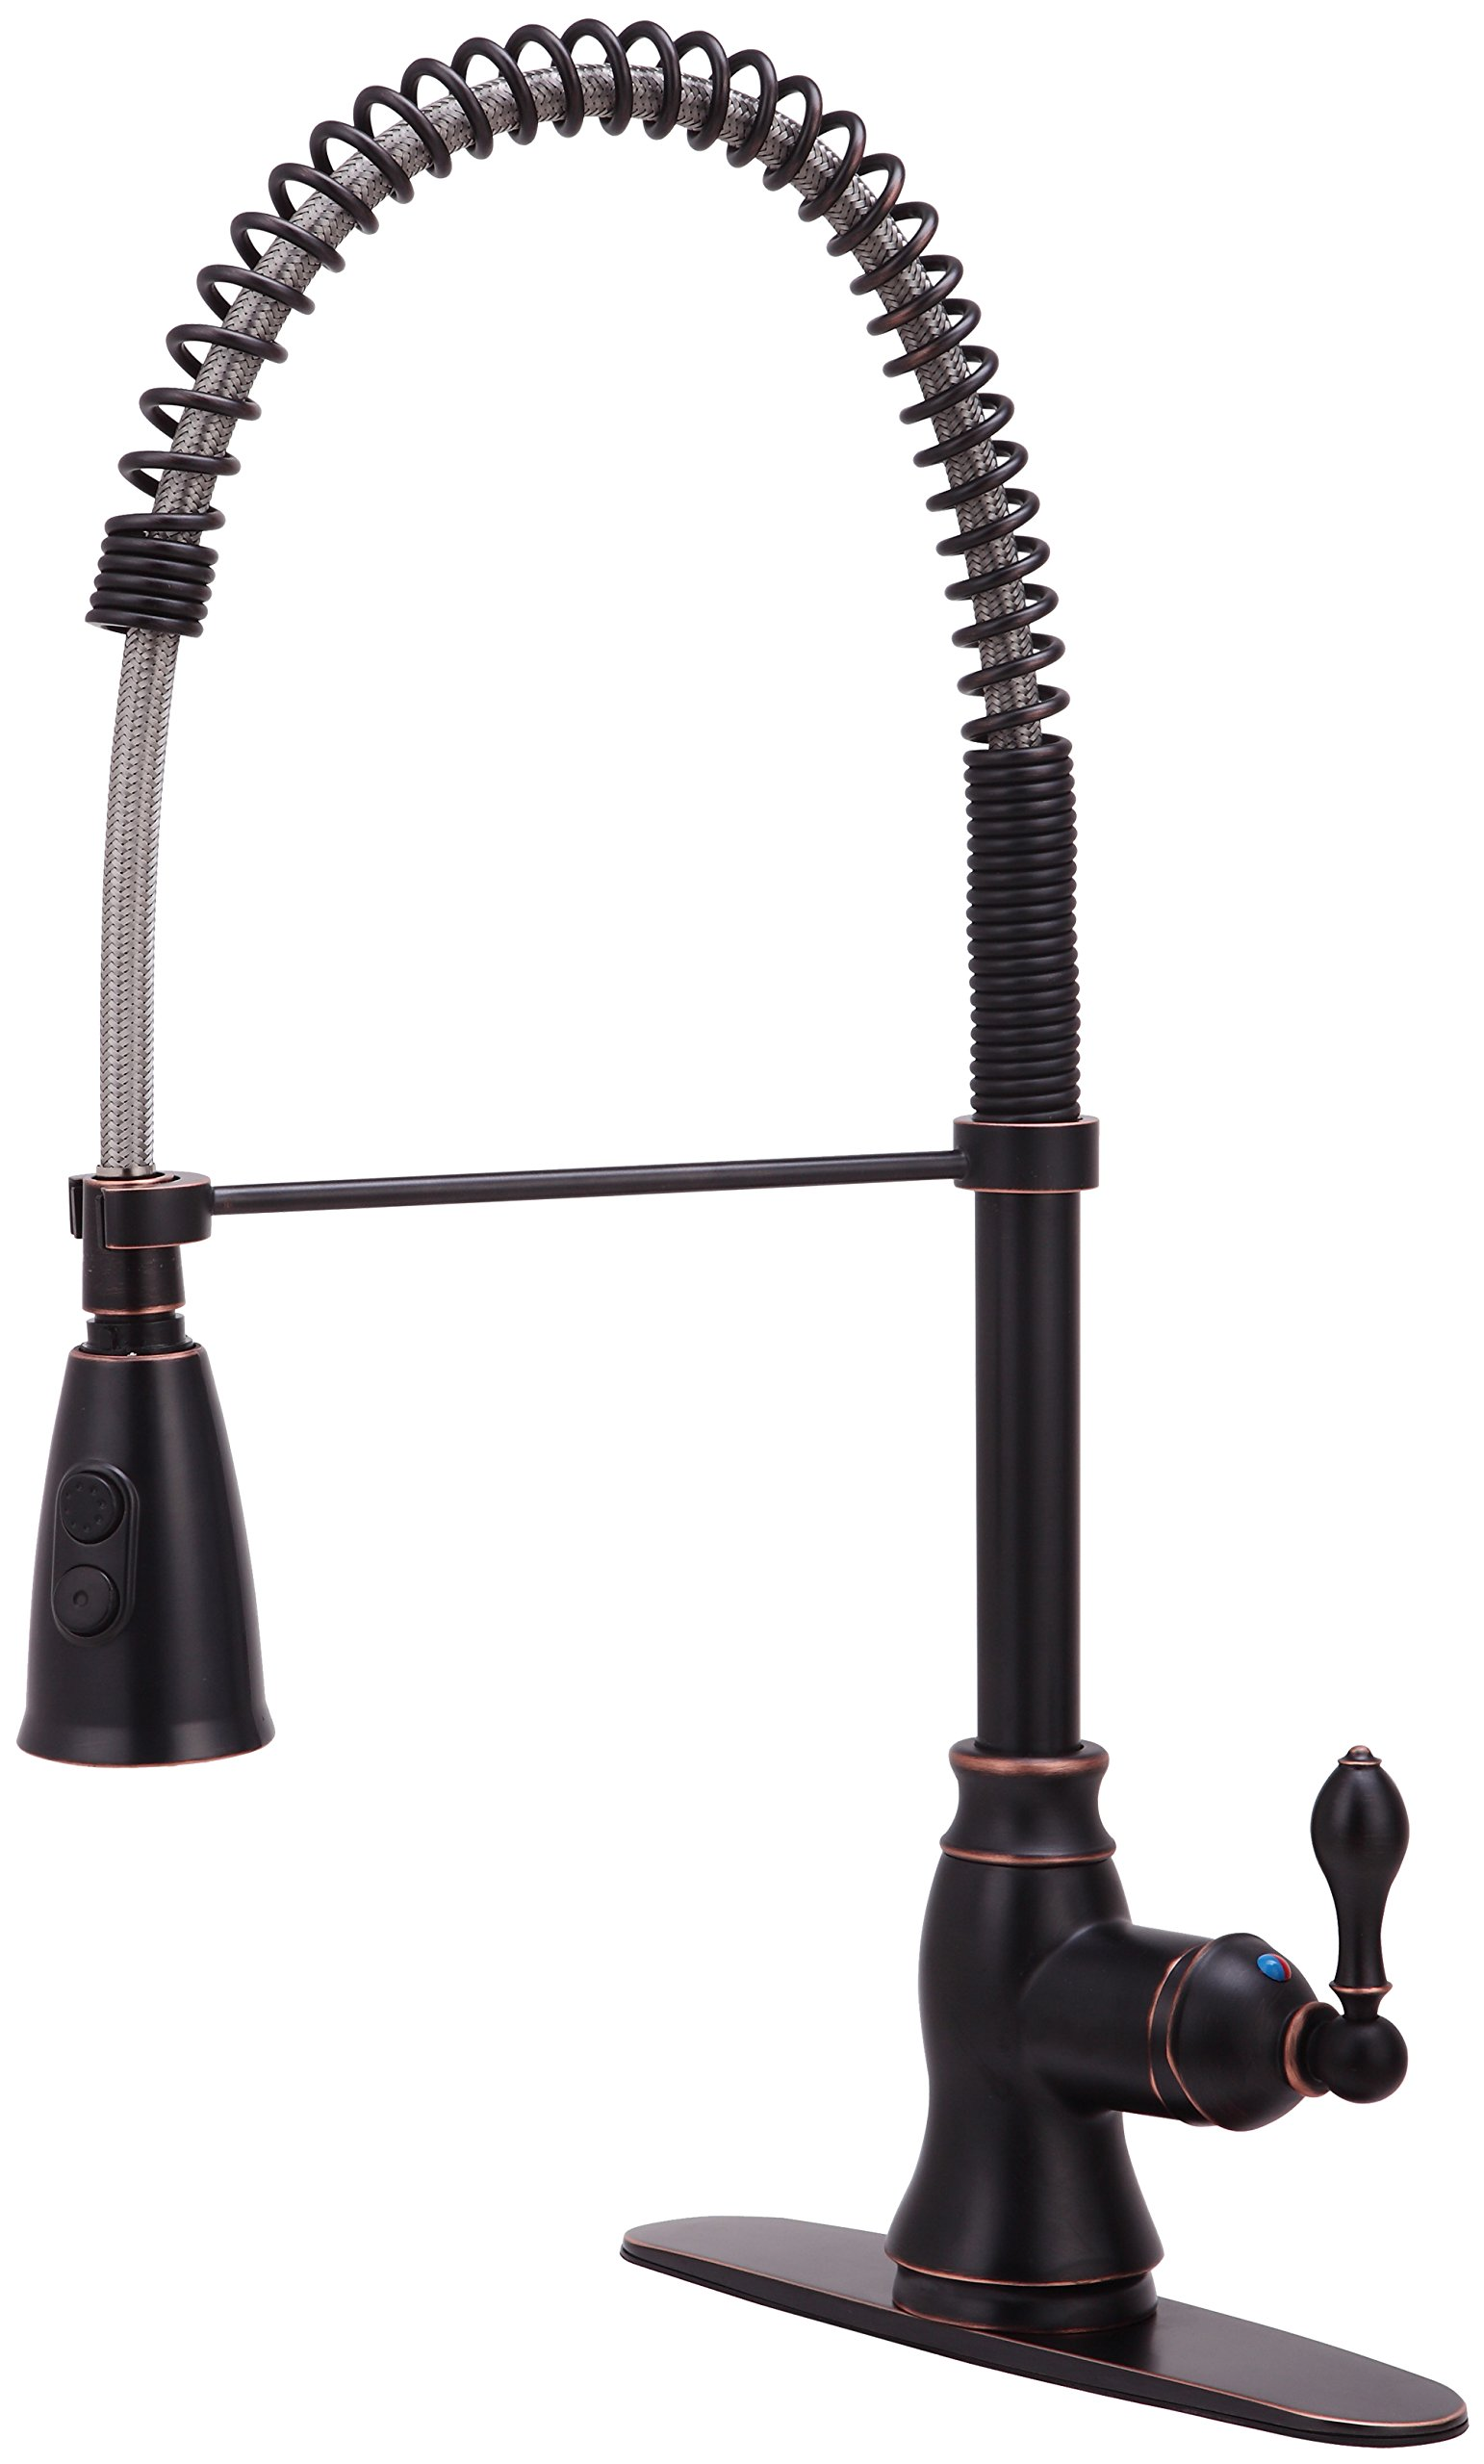 Derengge KF-5988-NB Single Handle Spring Spout Kitchen Faucet with Pull-Down Sprayer, 1 Hole or 3 Hole Installation, Meets cUPC NSF61-9 and AB1953 Lead Free Standard, Oil Rubbed Bronze by Derengge